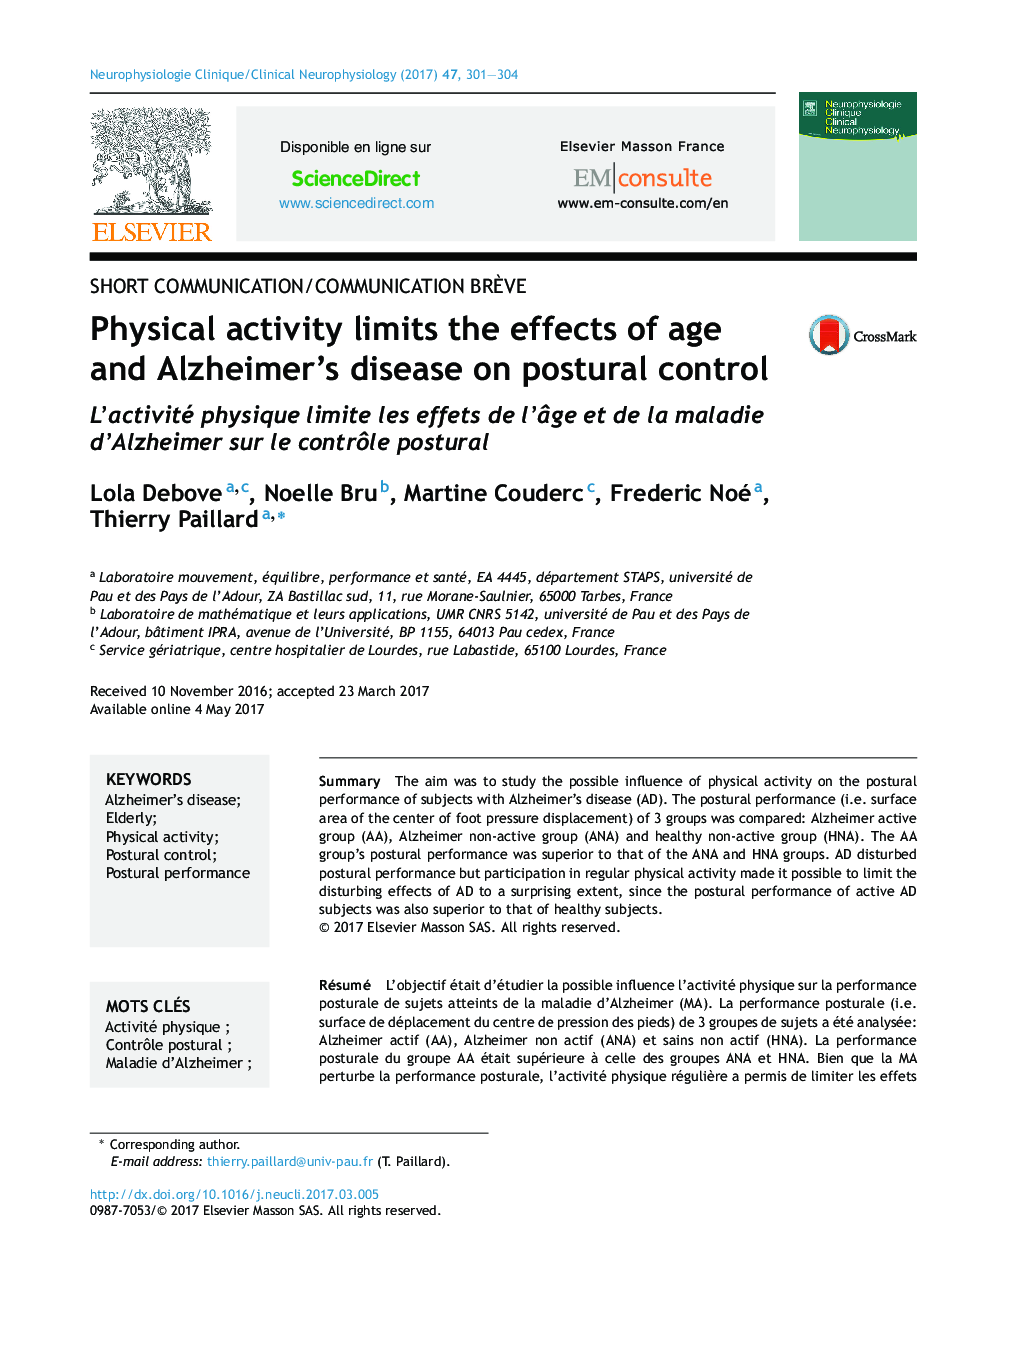 Physical activity limits the effects of age and Alzheimer's disease on postural control